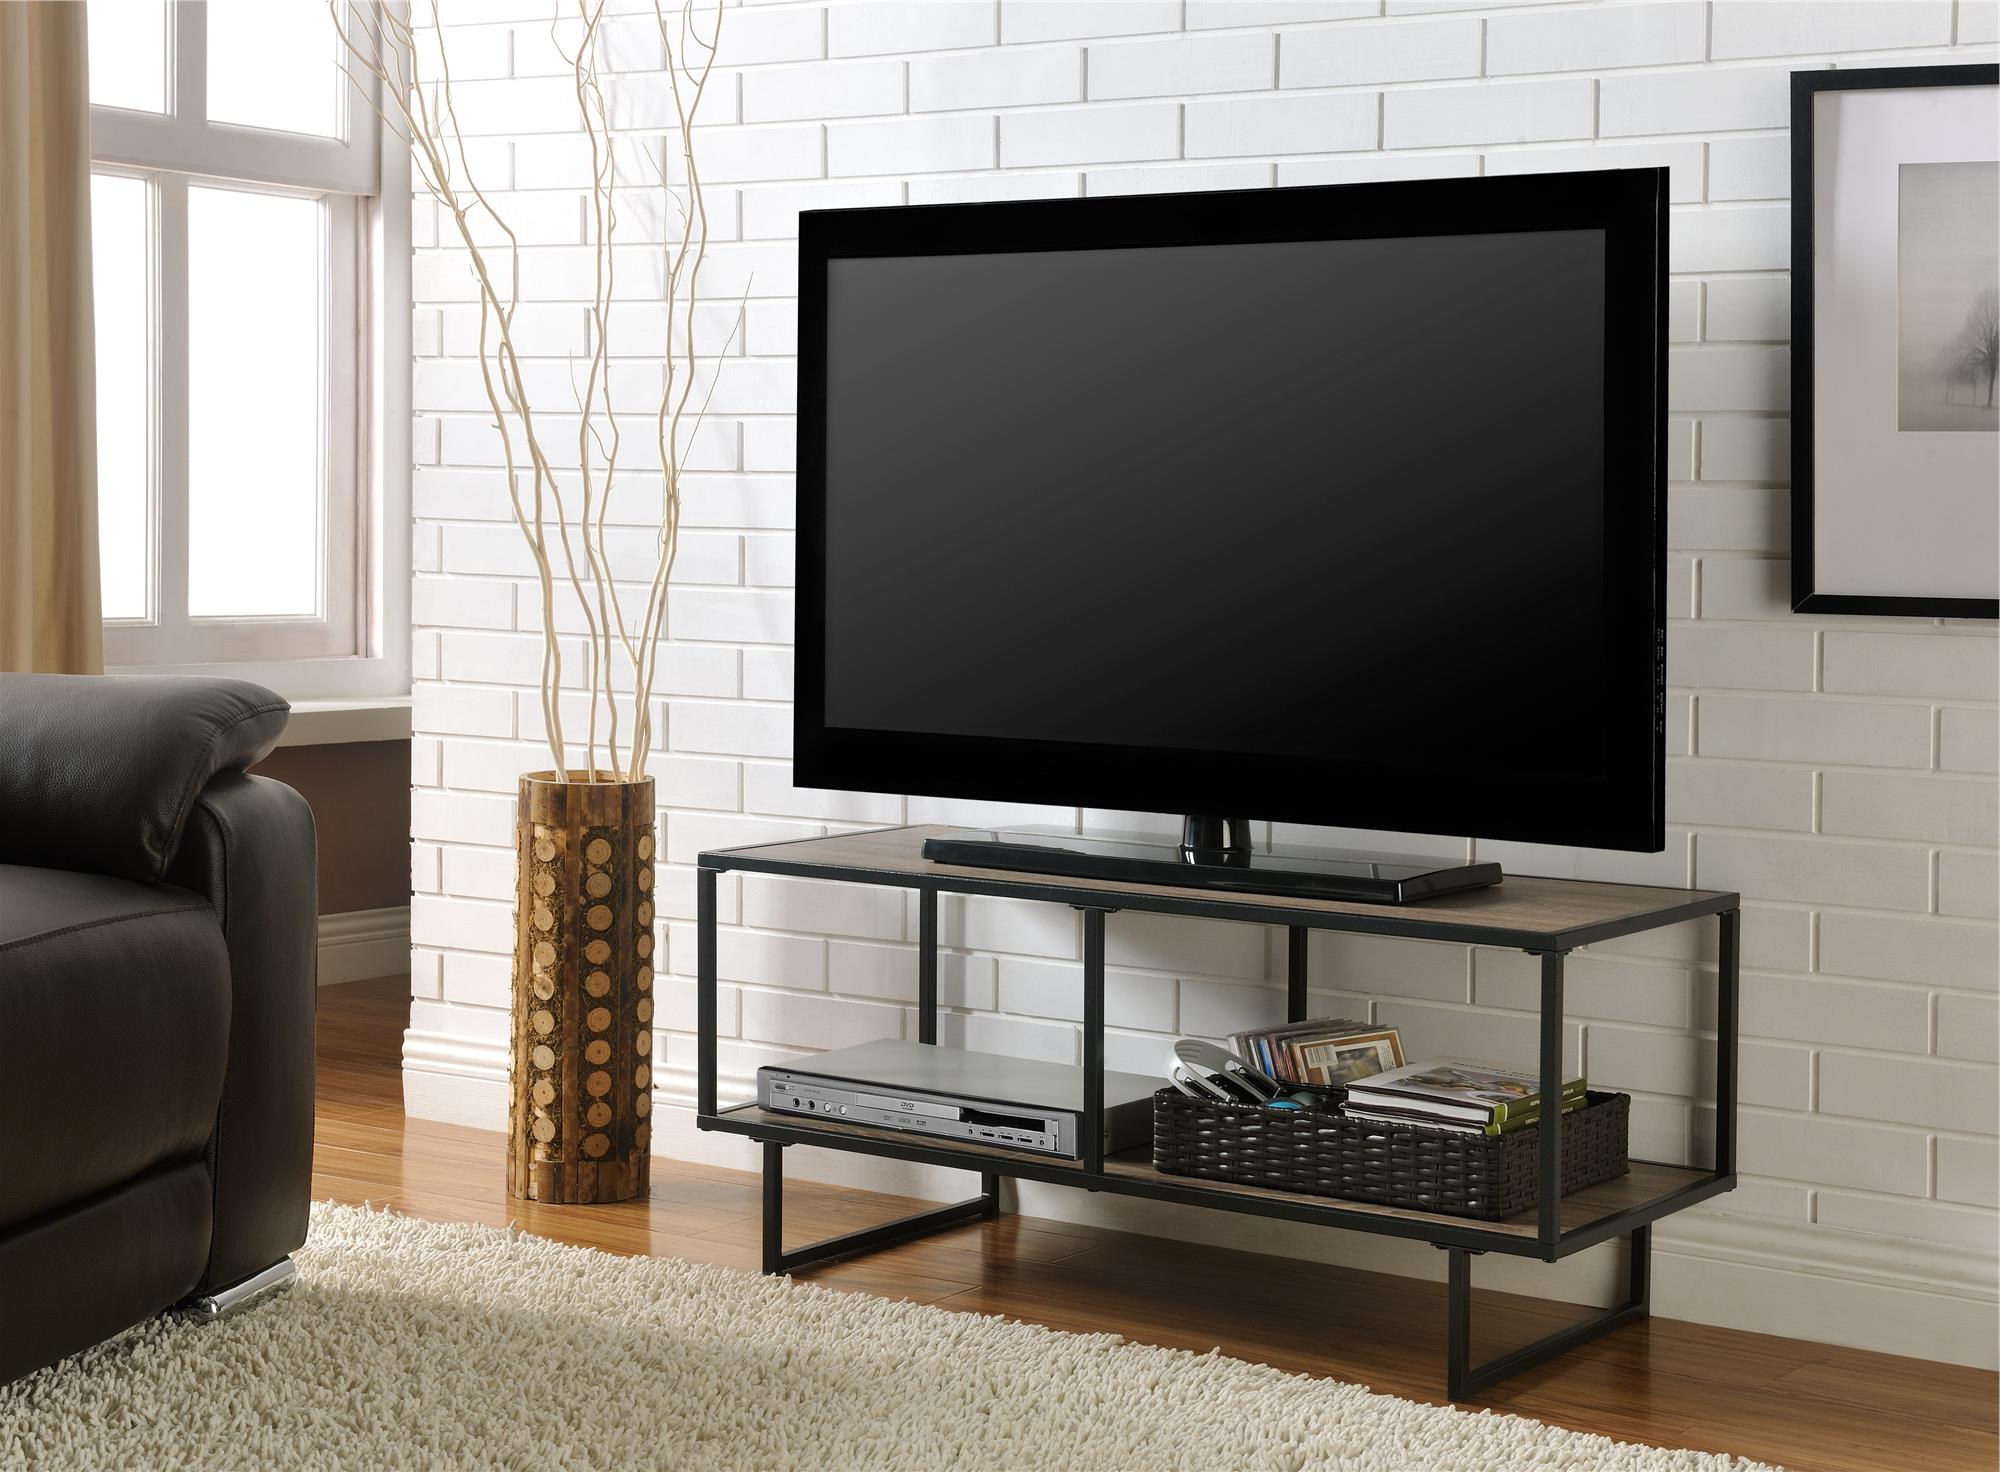 Emmett Tv Stand/coffee Table For Tvs Up To 42 (Gallery 15 of 20)